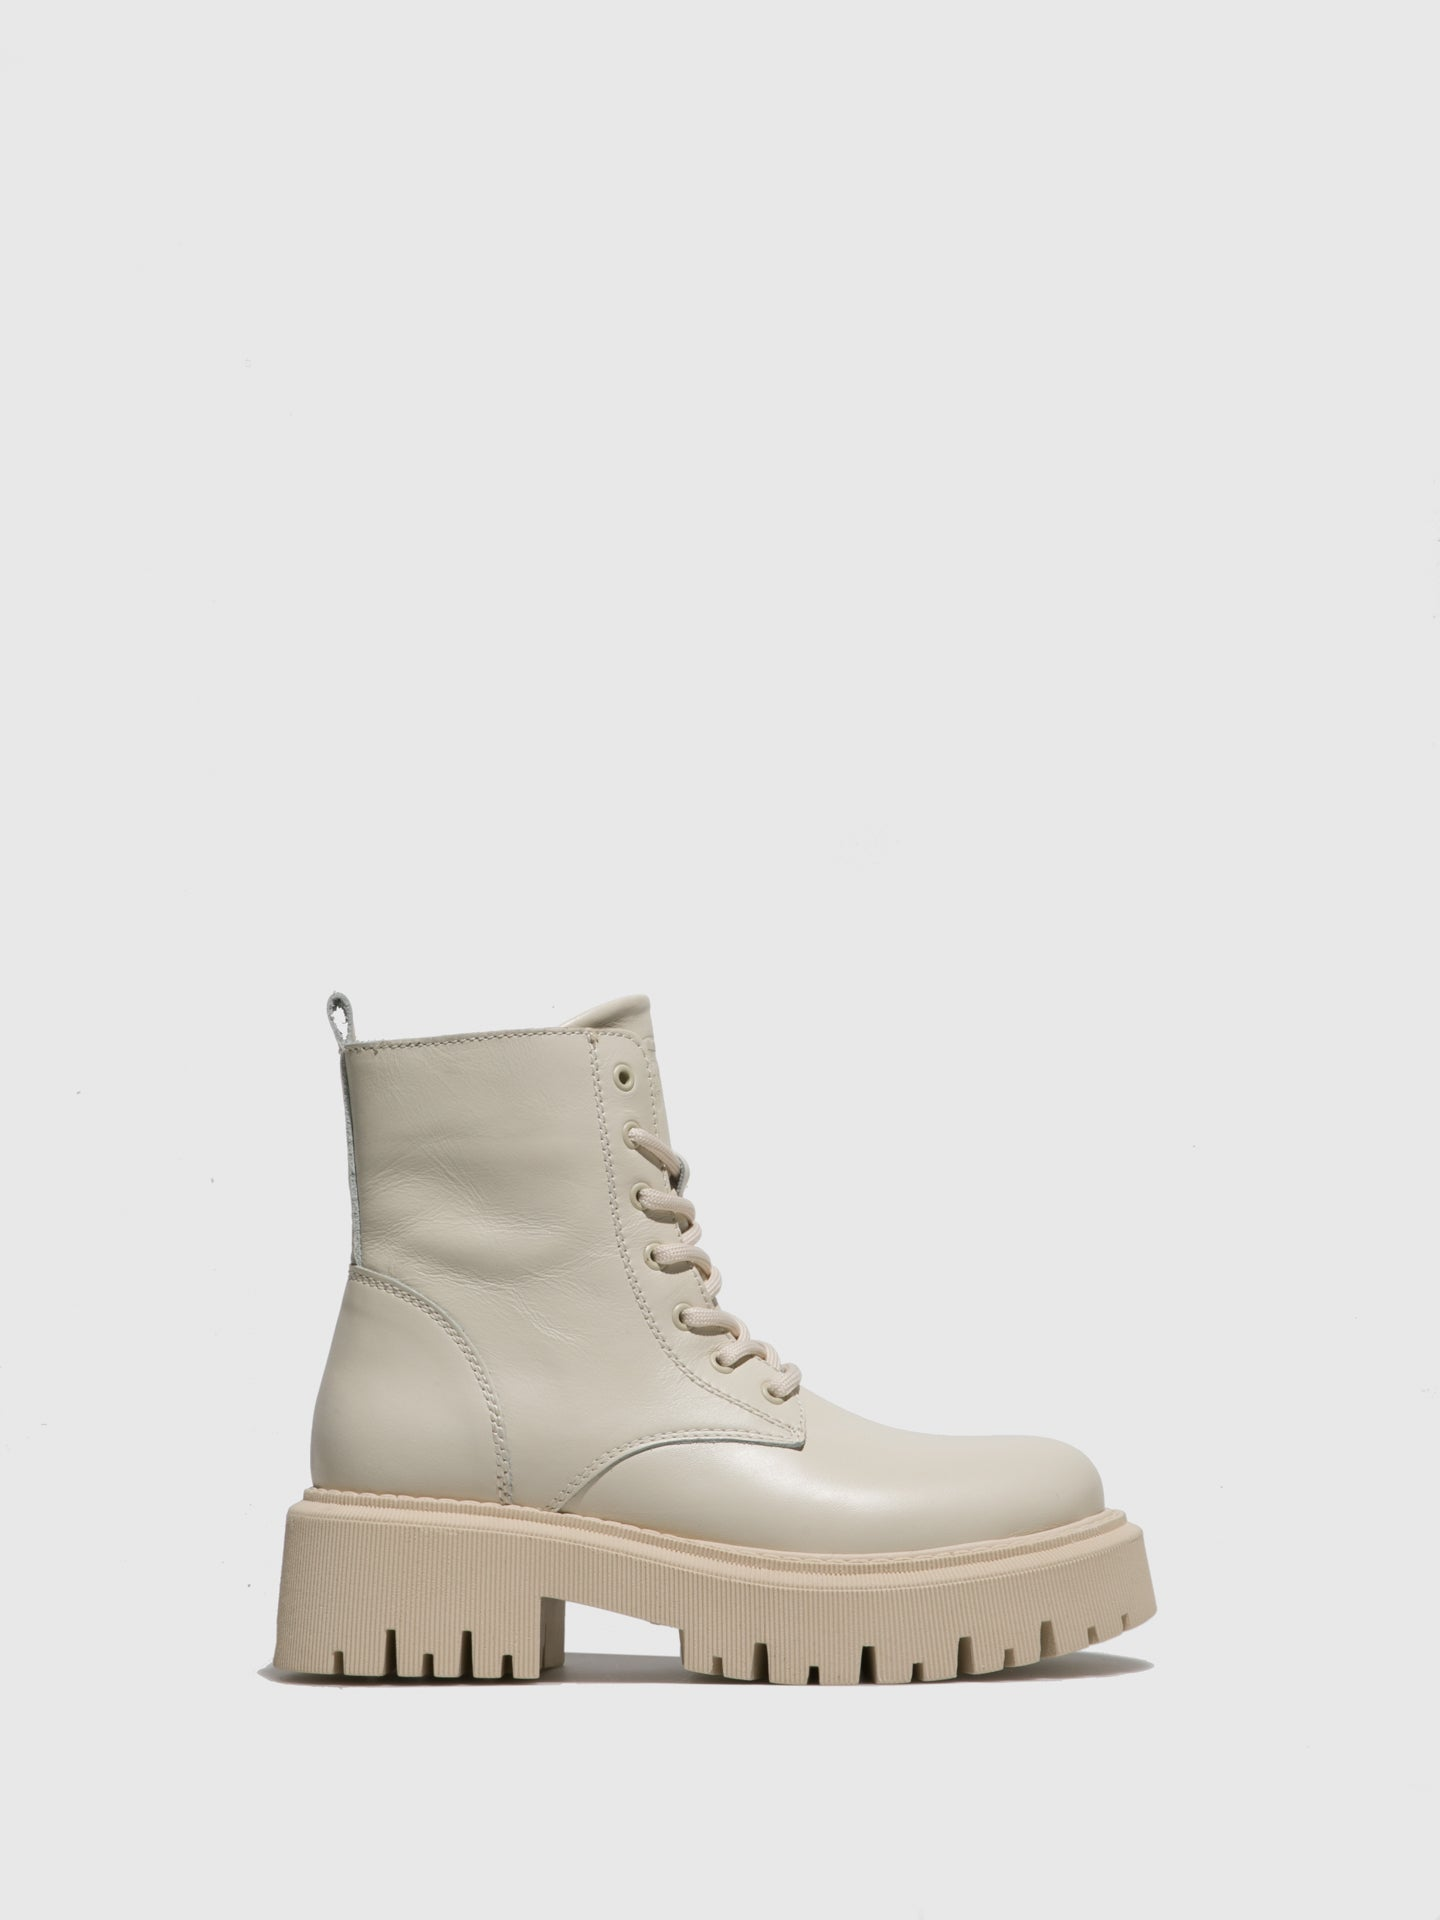 Fungi Beige Lace-up Ankle Boots